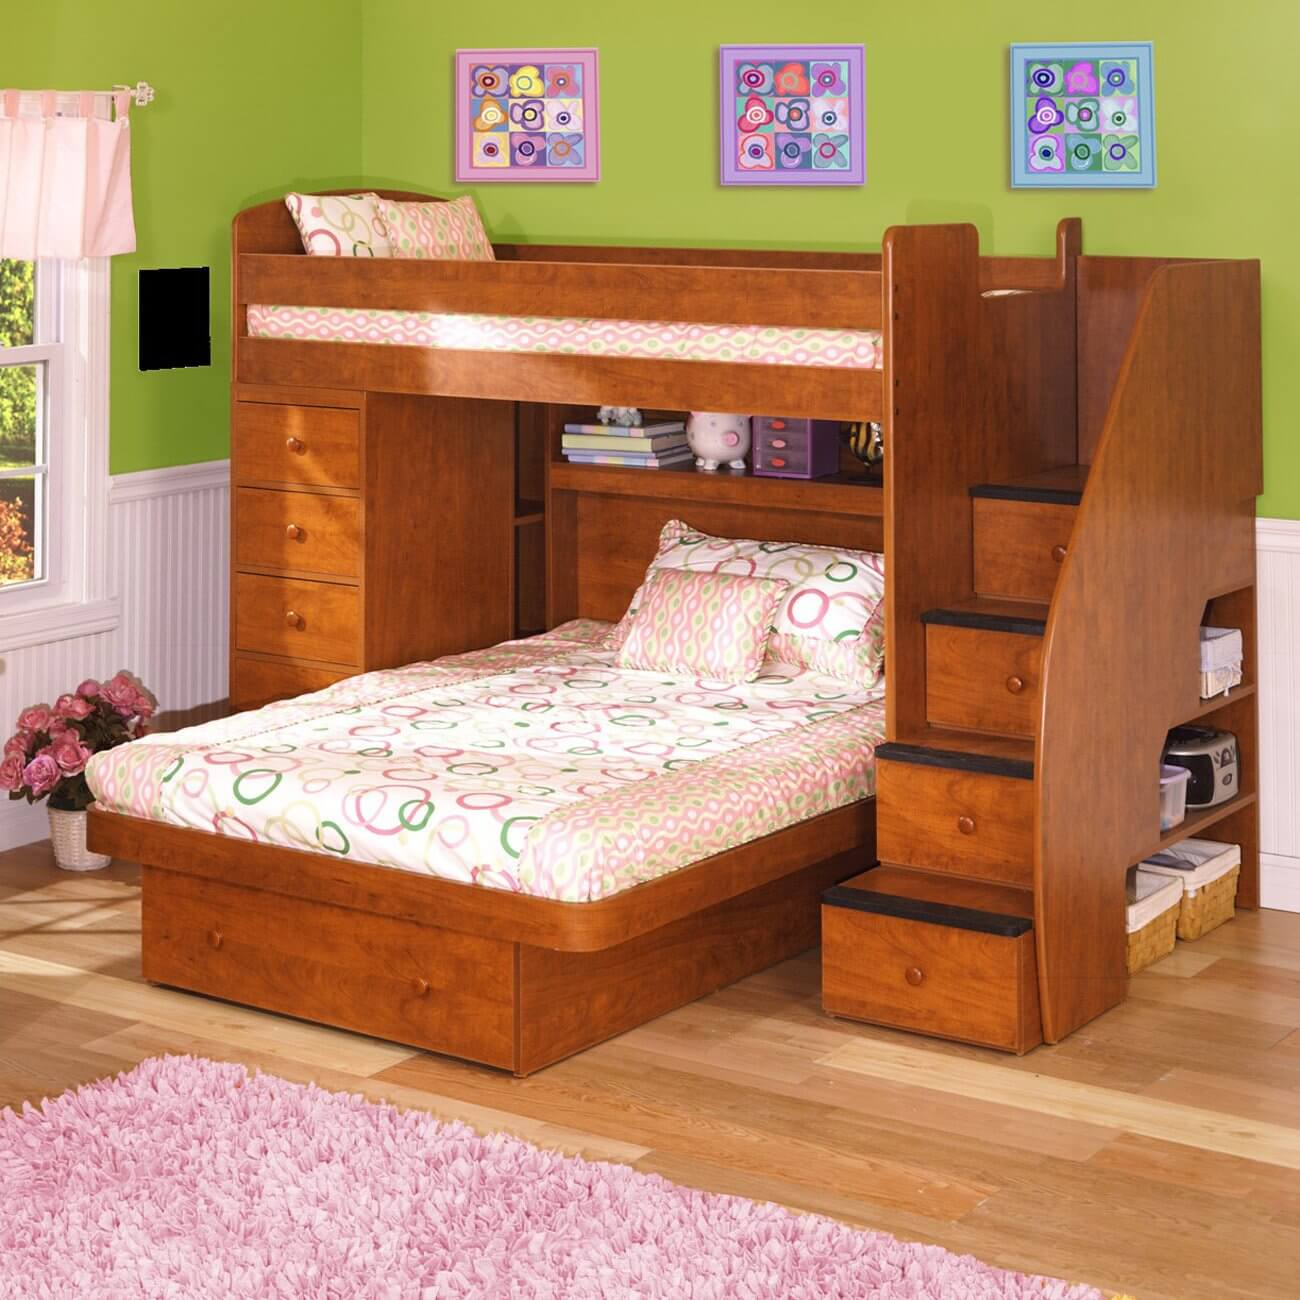 Bunk beds for adults full - Bunk Beds For Adults Full 48